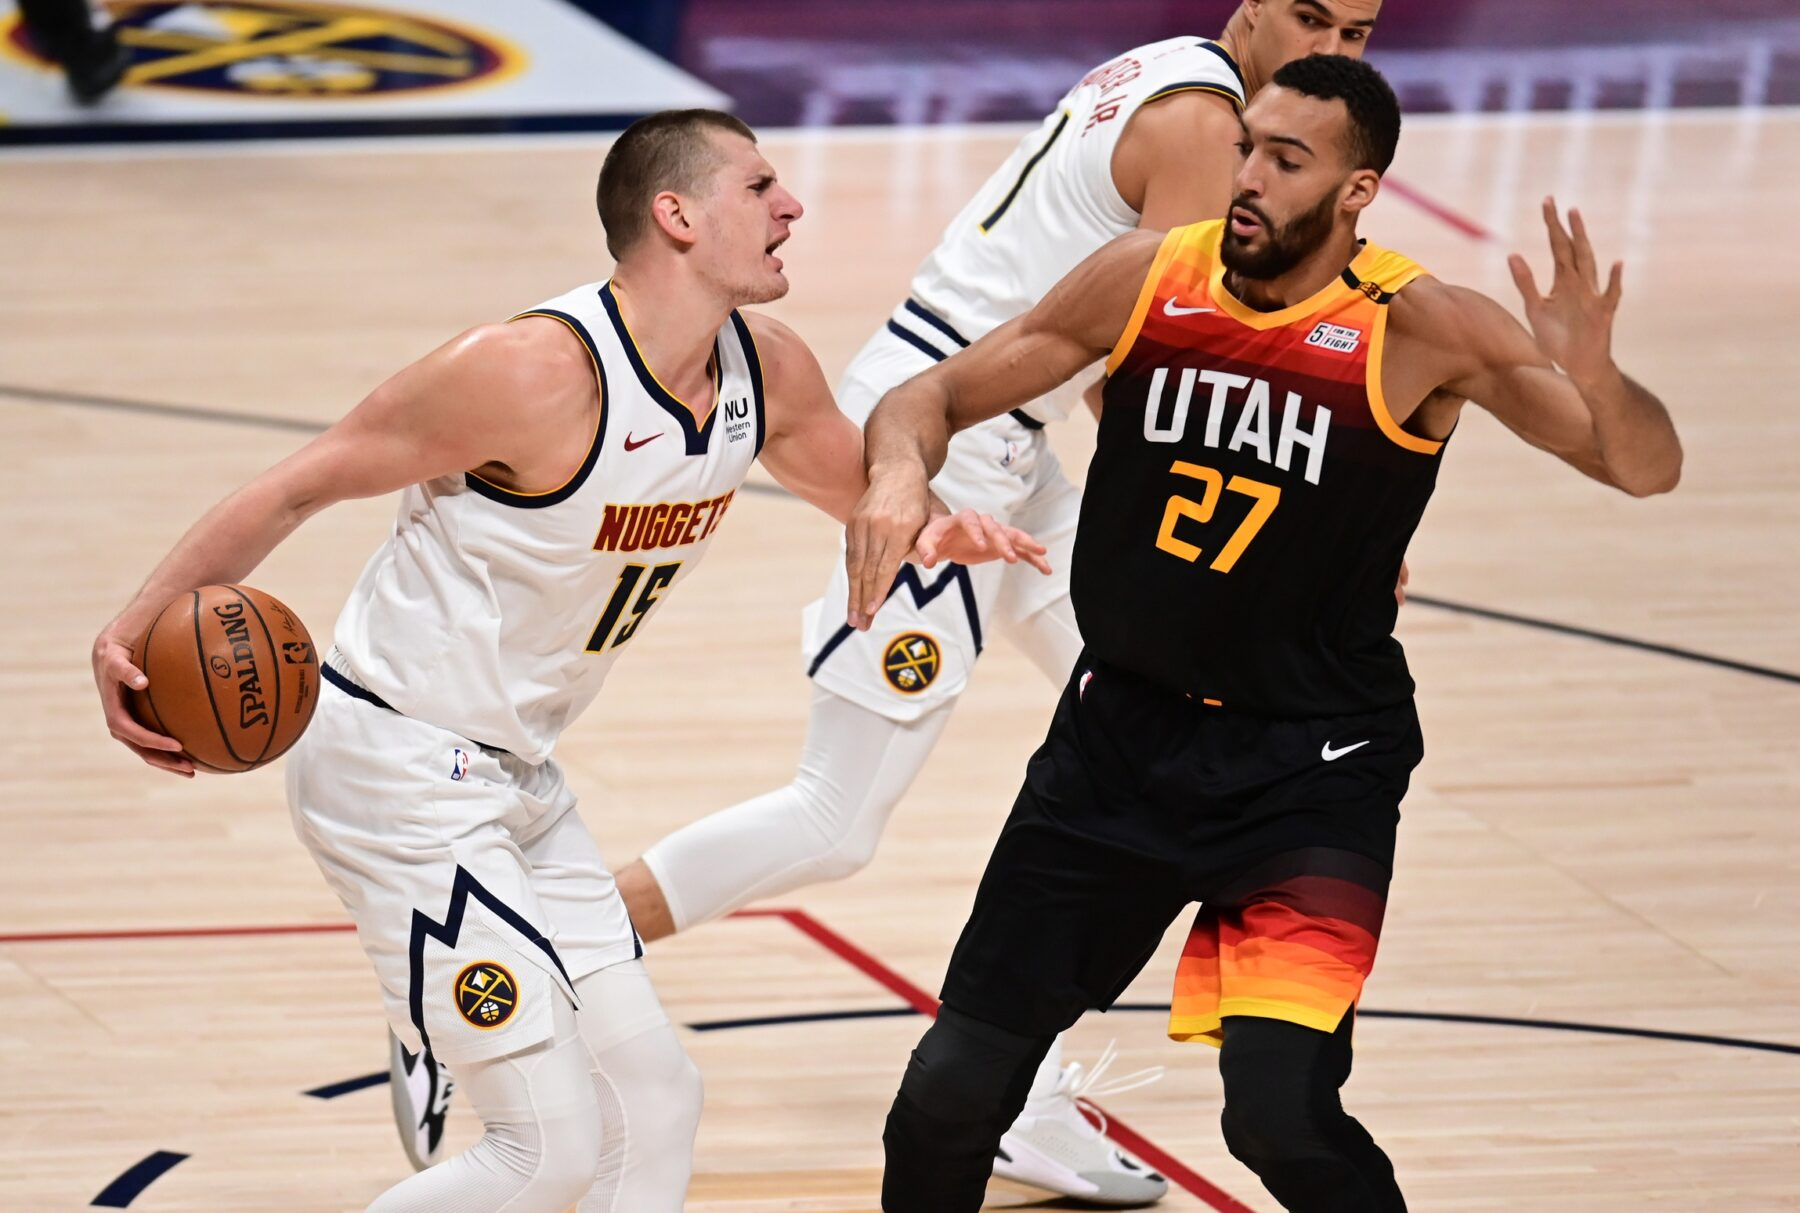 Nikola Jokic and Rudy Gobert